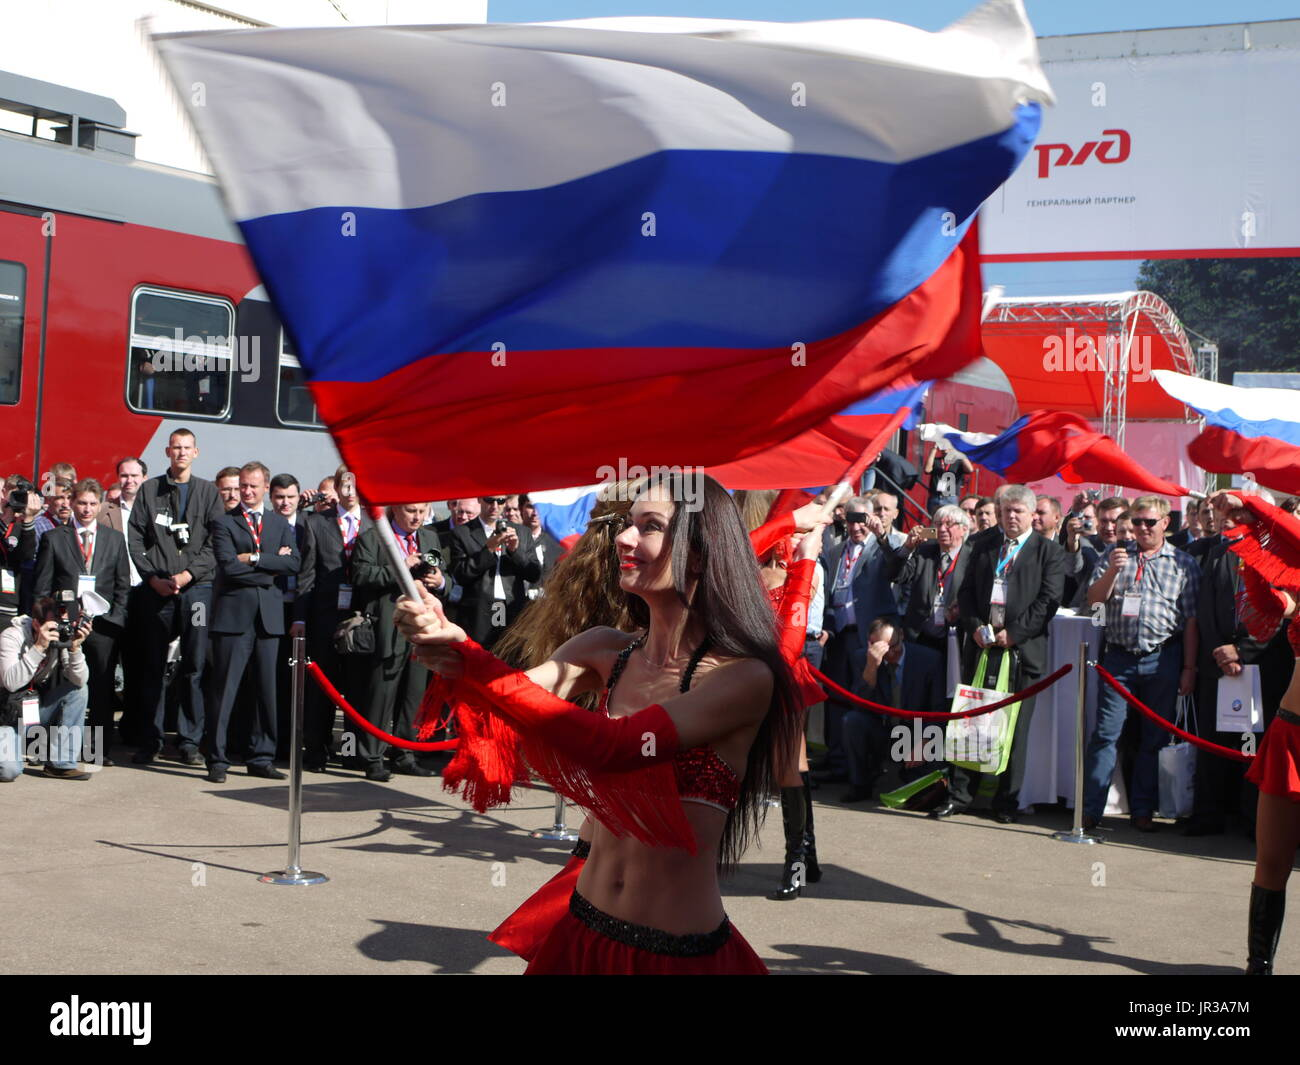 Girl wave a russian flag during oppening ceremony of the annual meeting of railways industry in Moscow - Stock Image